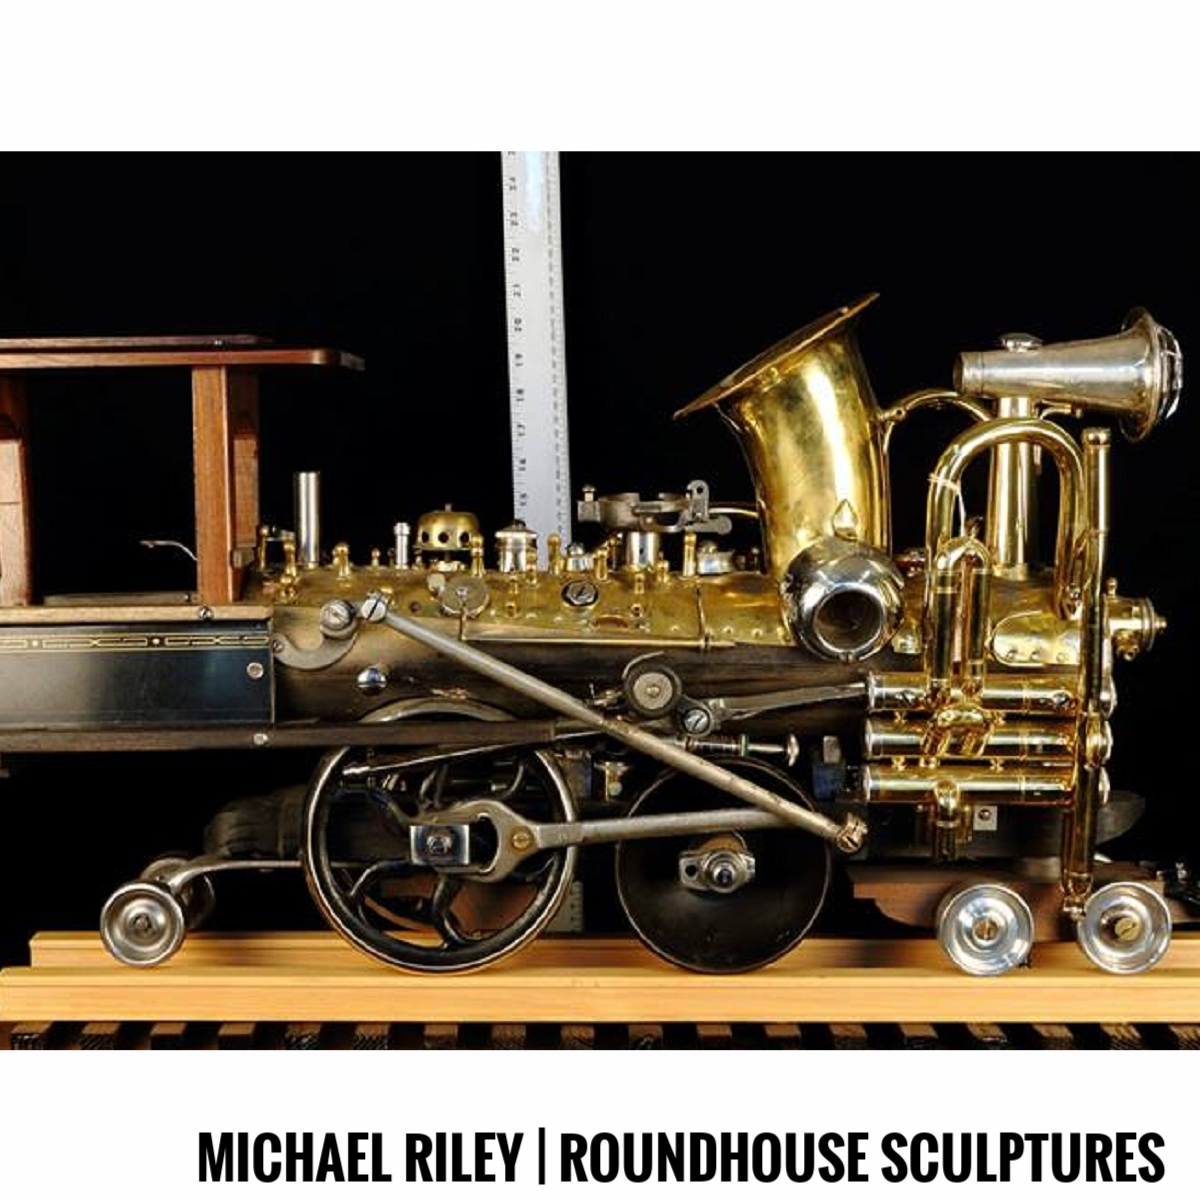 Michael Riley | Roundhouse Sculptures